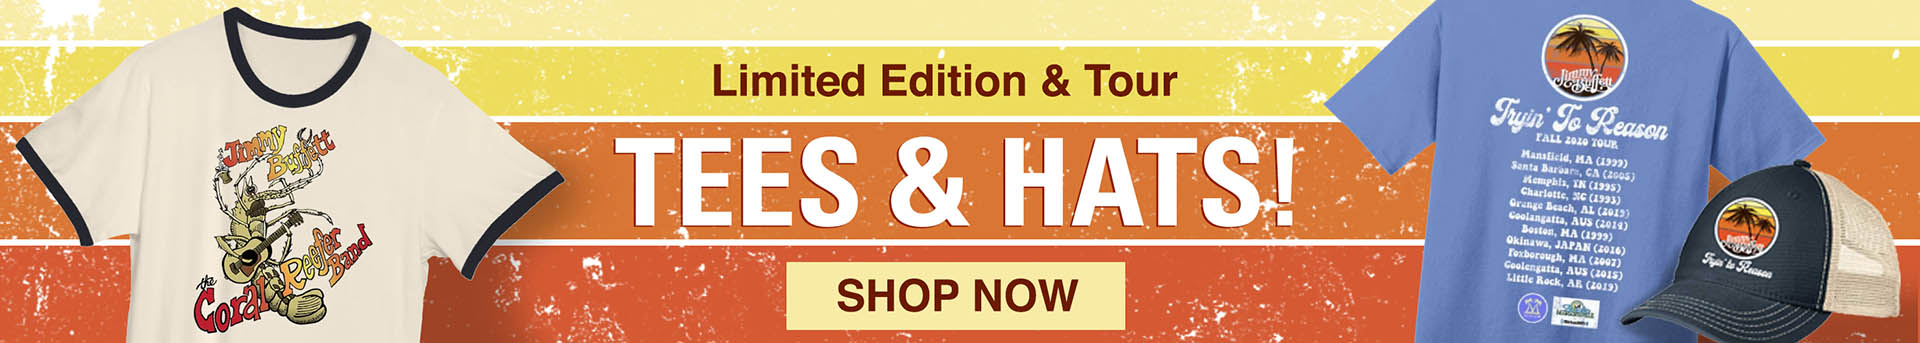 Jimmy Buffett limited edition and tour tees and hats - shop now